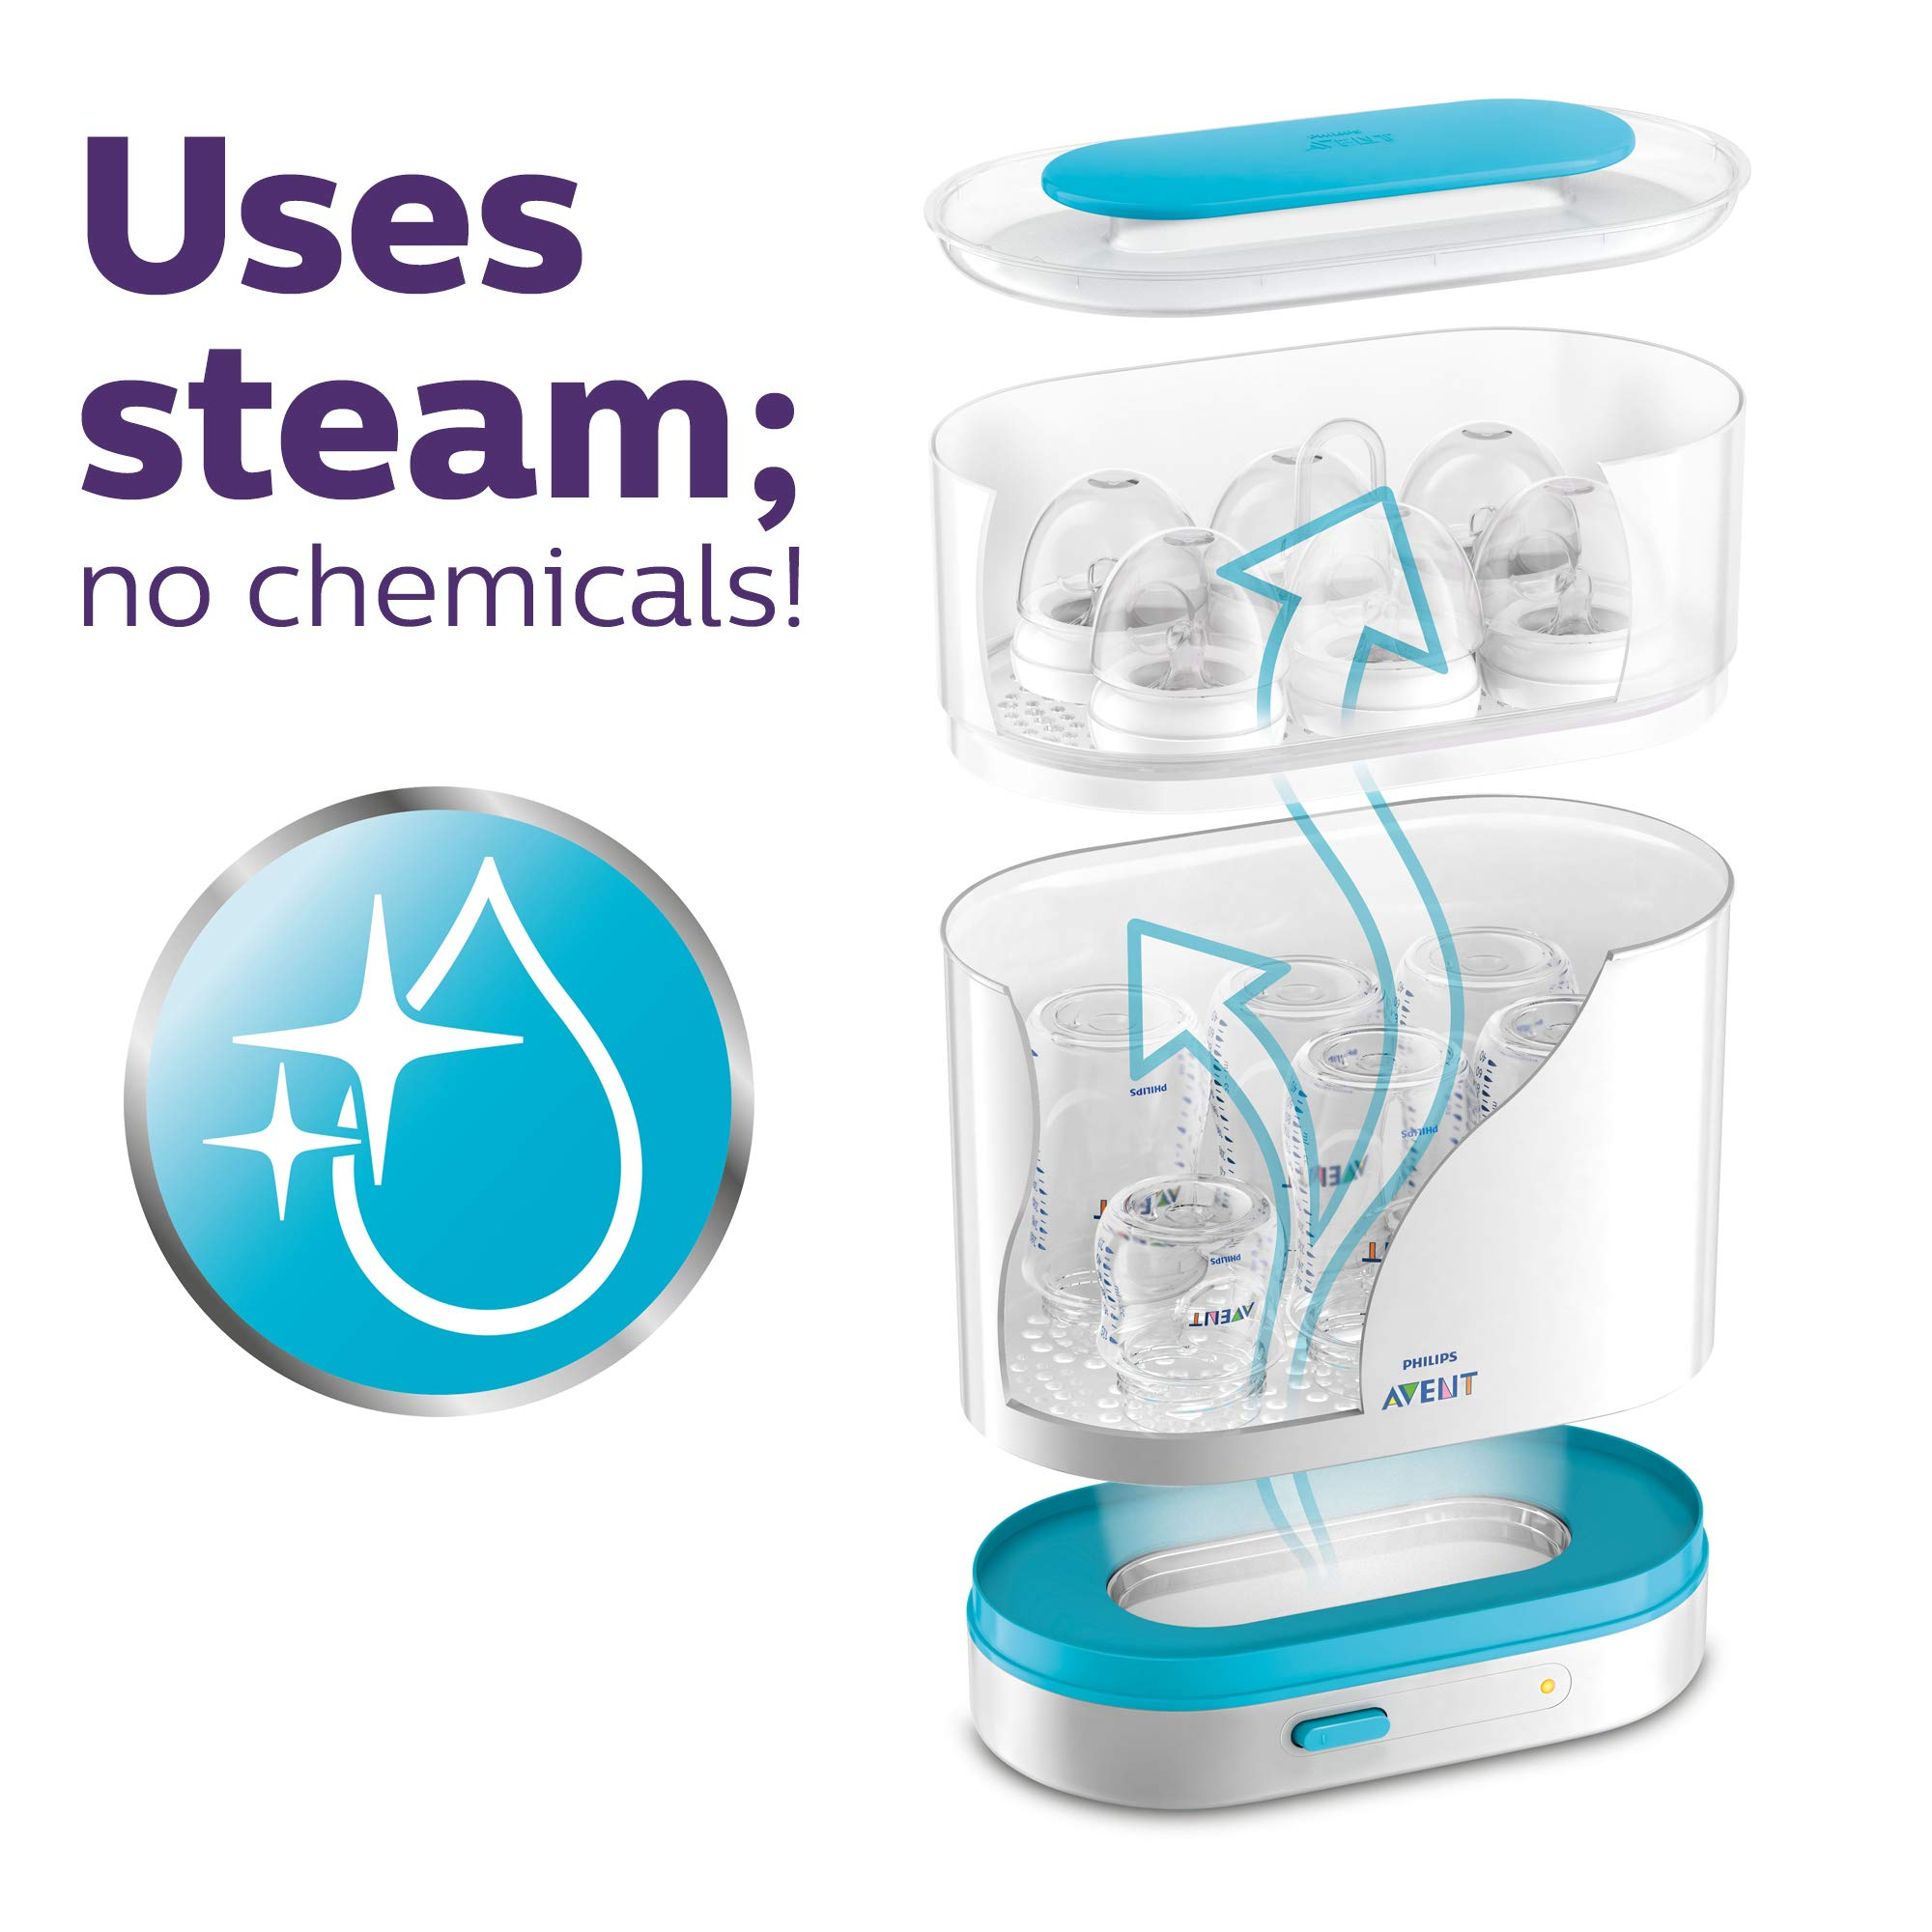 Philips Avent 3-in-1 Electric Steam Sterilizer for Baby Bottles, Pacifiers, Cups and More